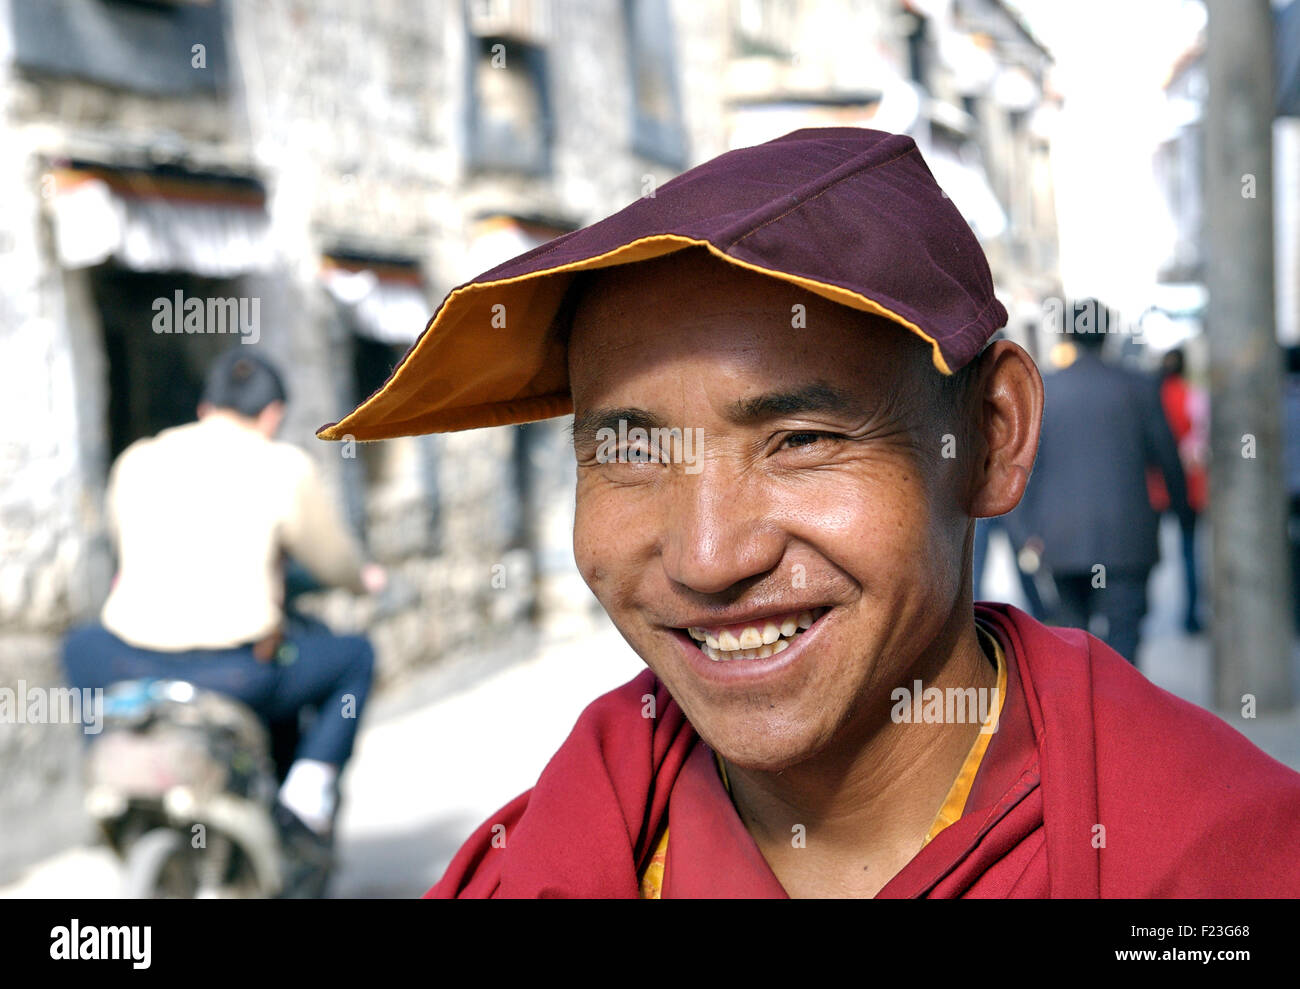 Portrait of a Tibetan buddhist monk in the old town area of Lhasa, Tibet - Stock Image